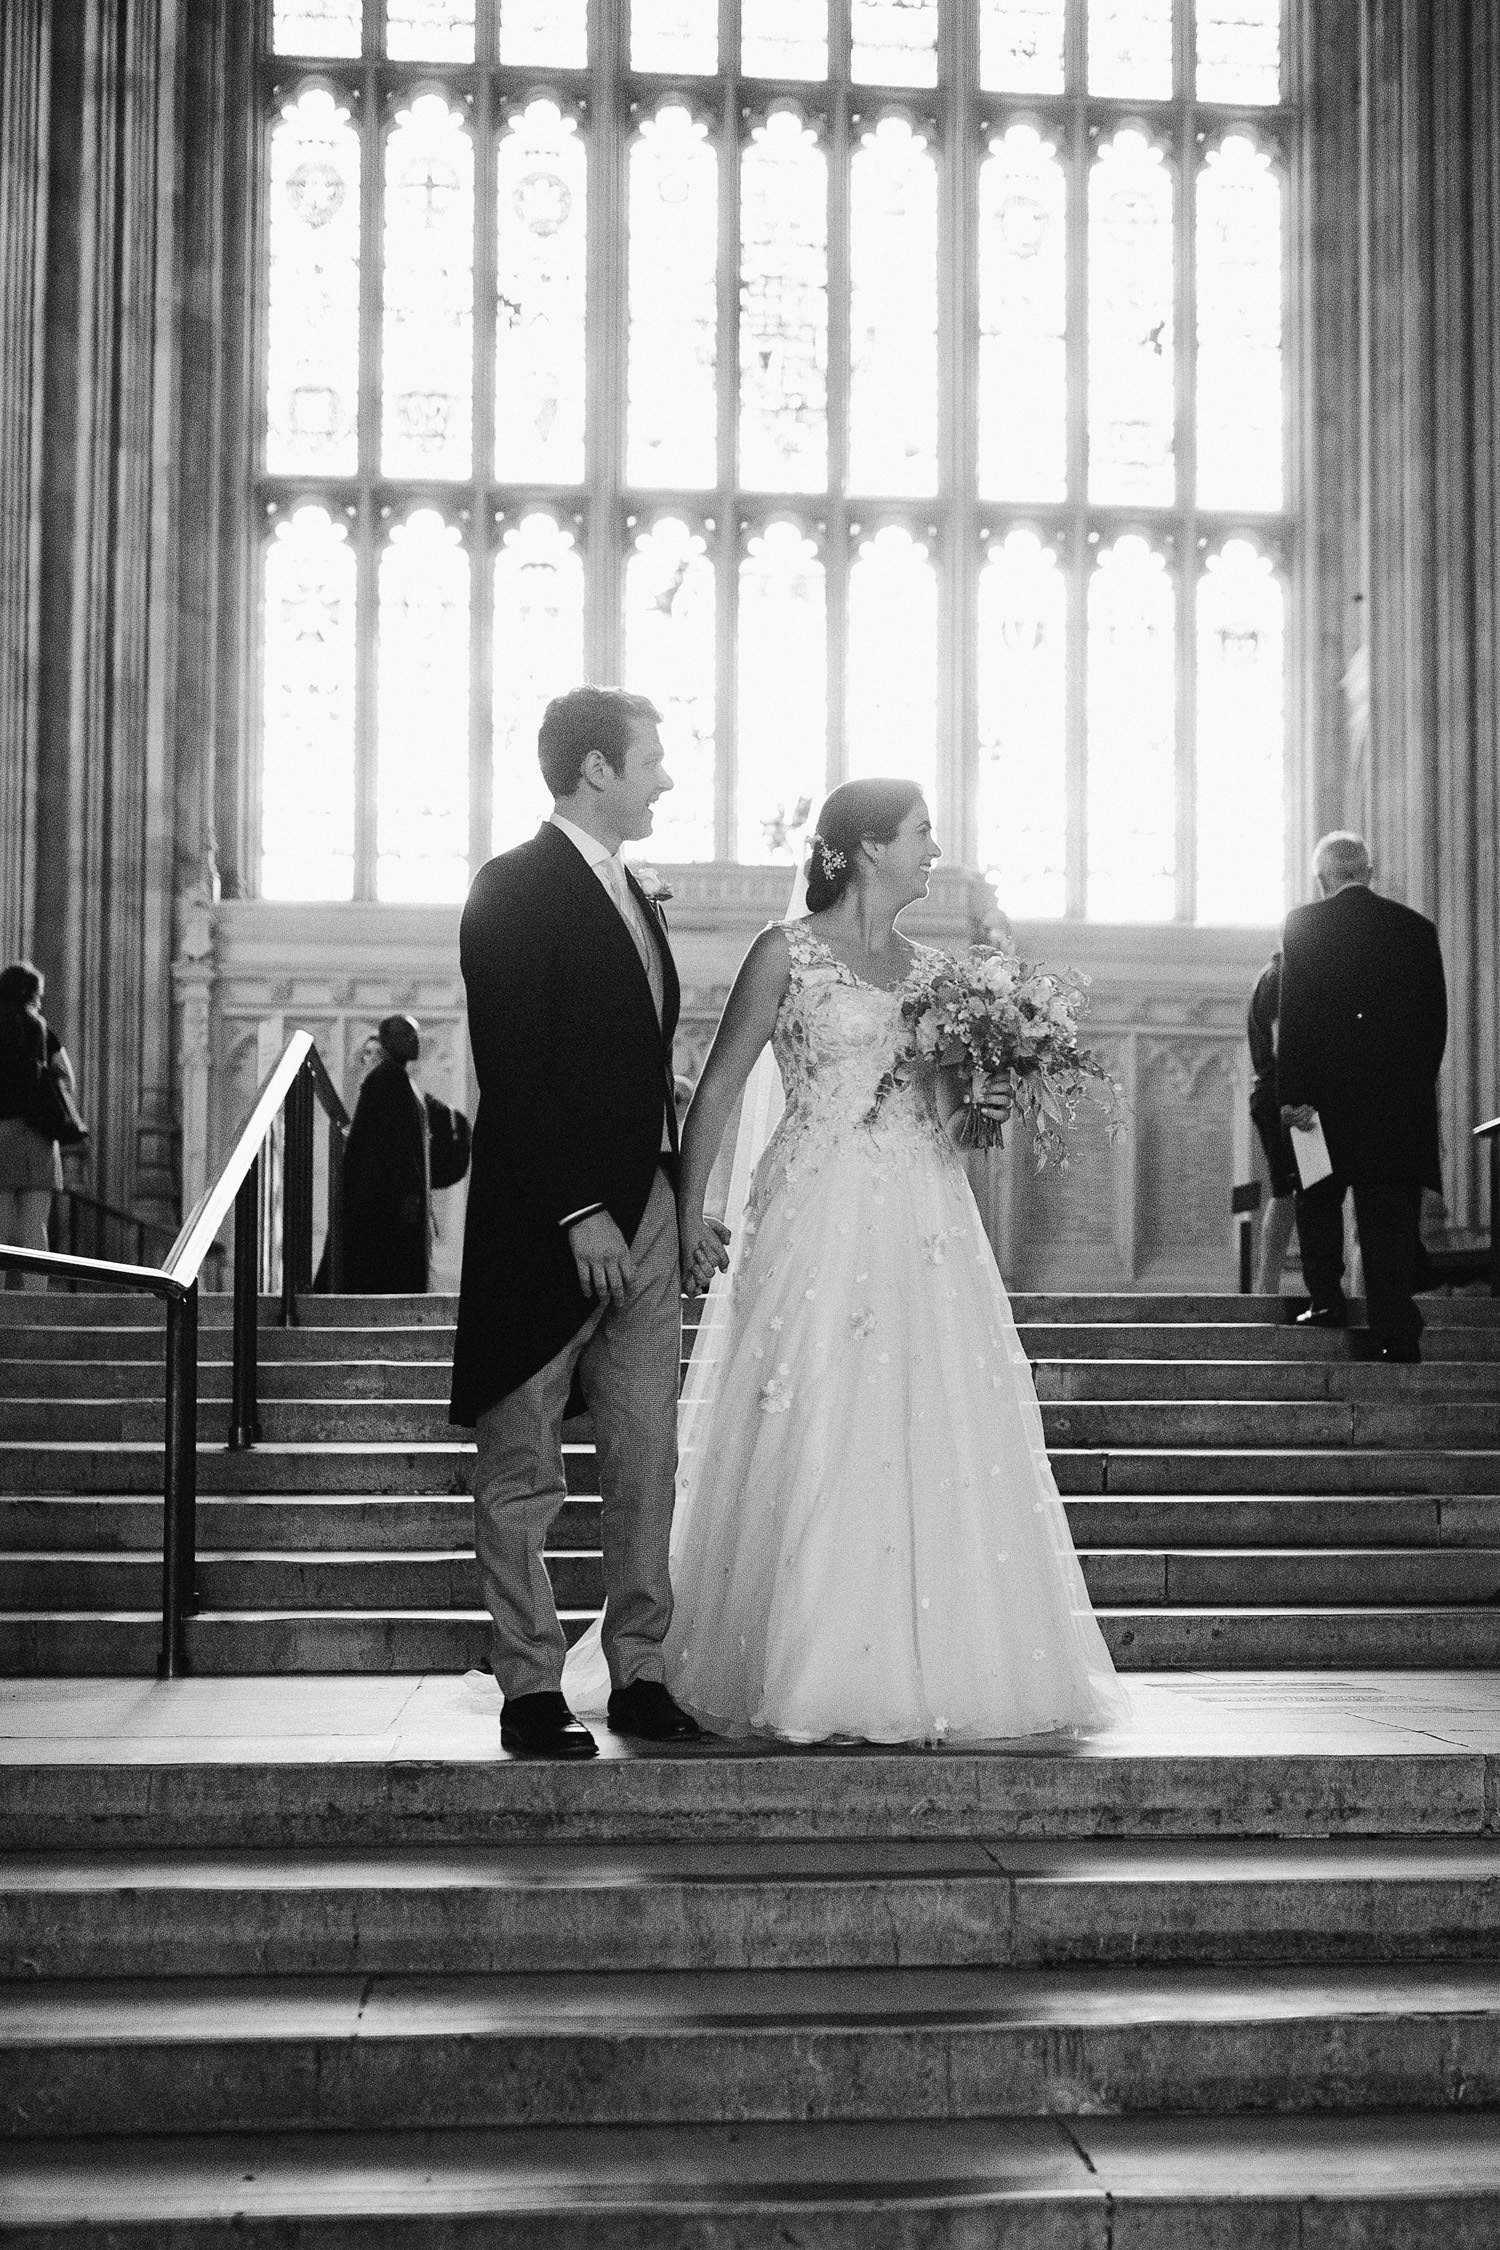 Bride and groom on the steps at a House of Lords Chapel wedding